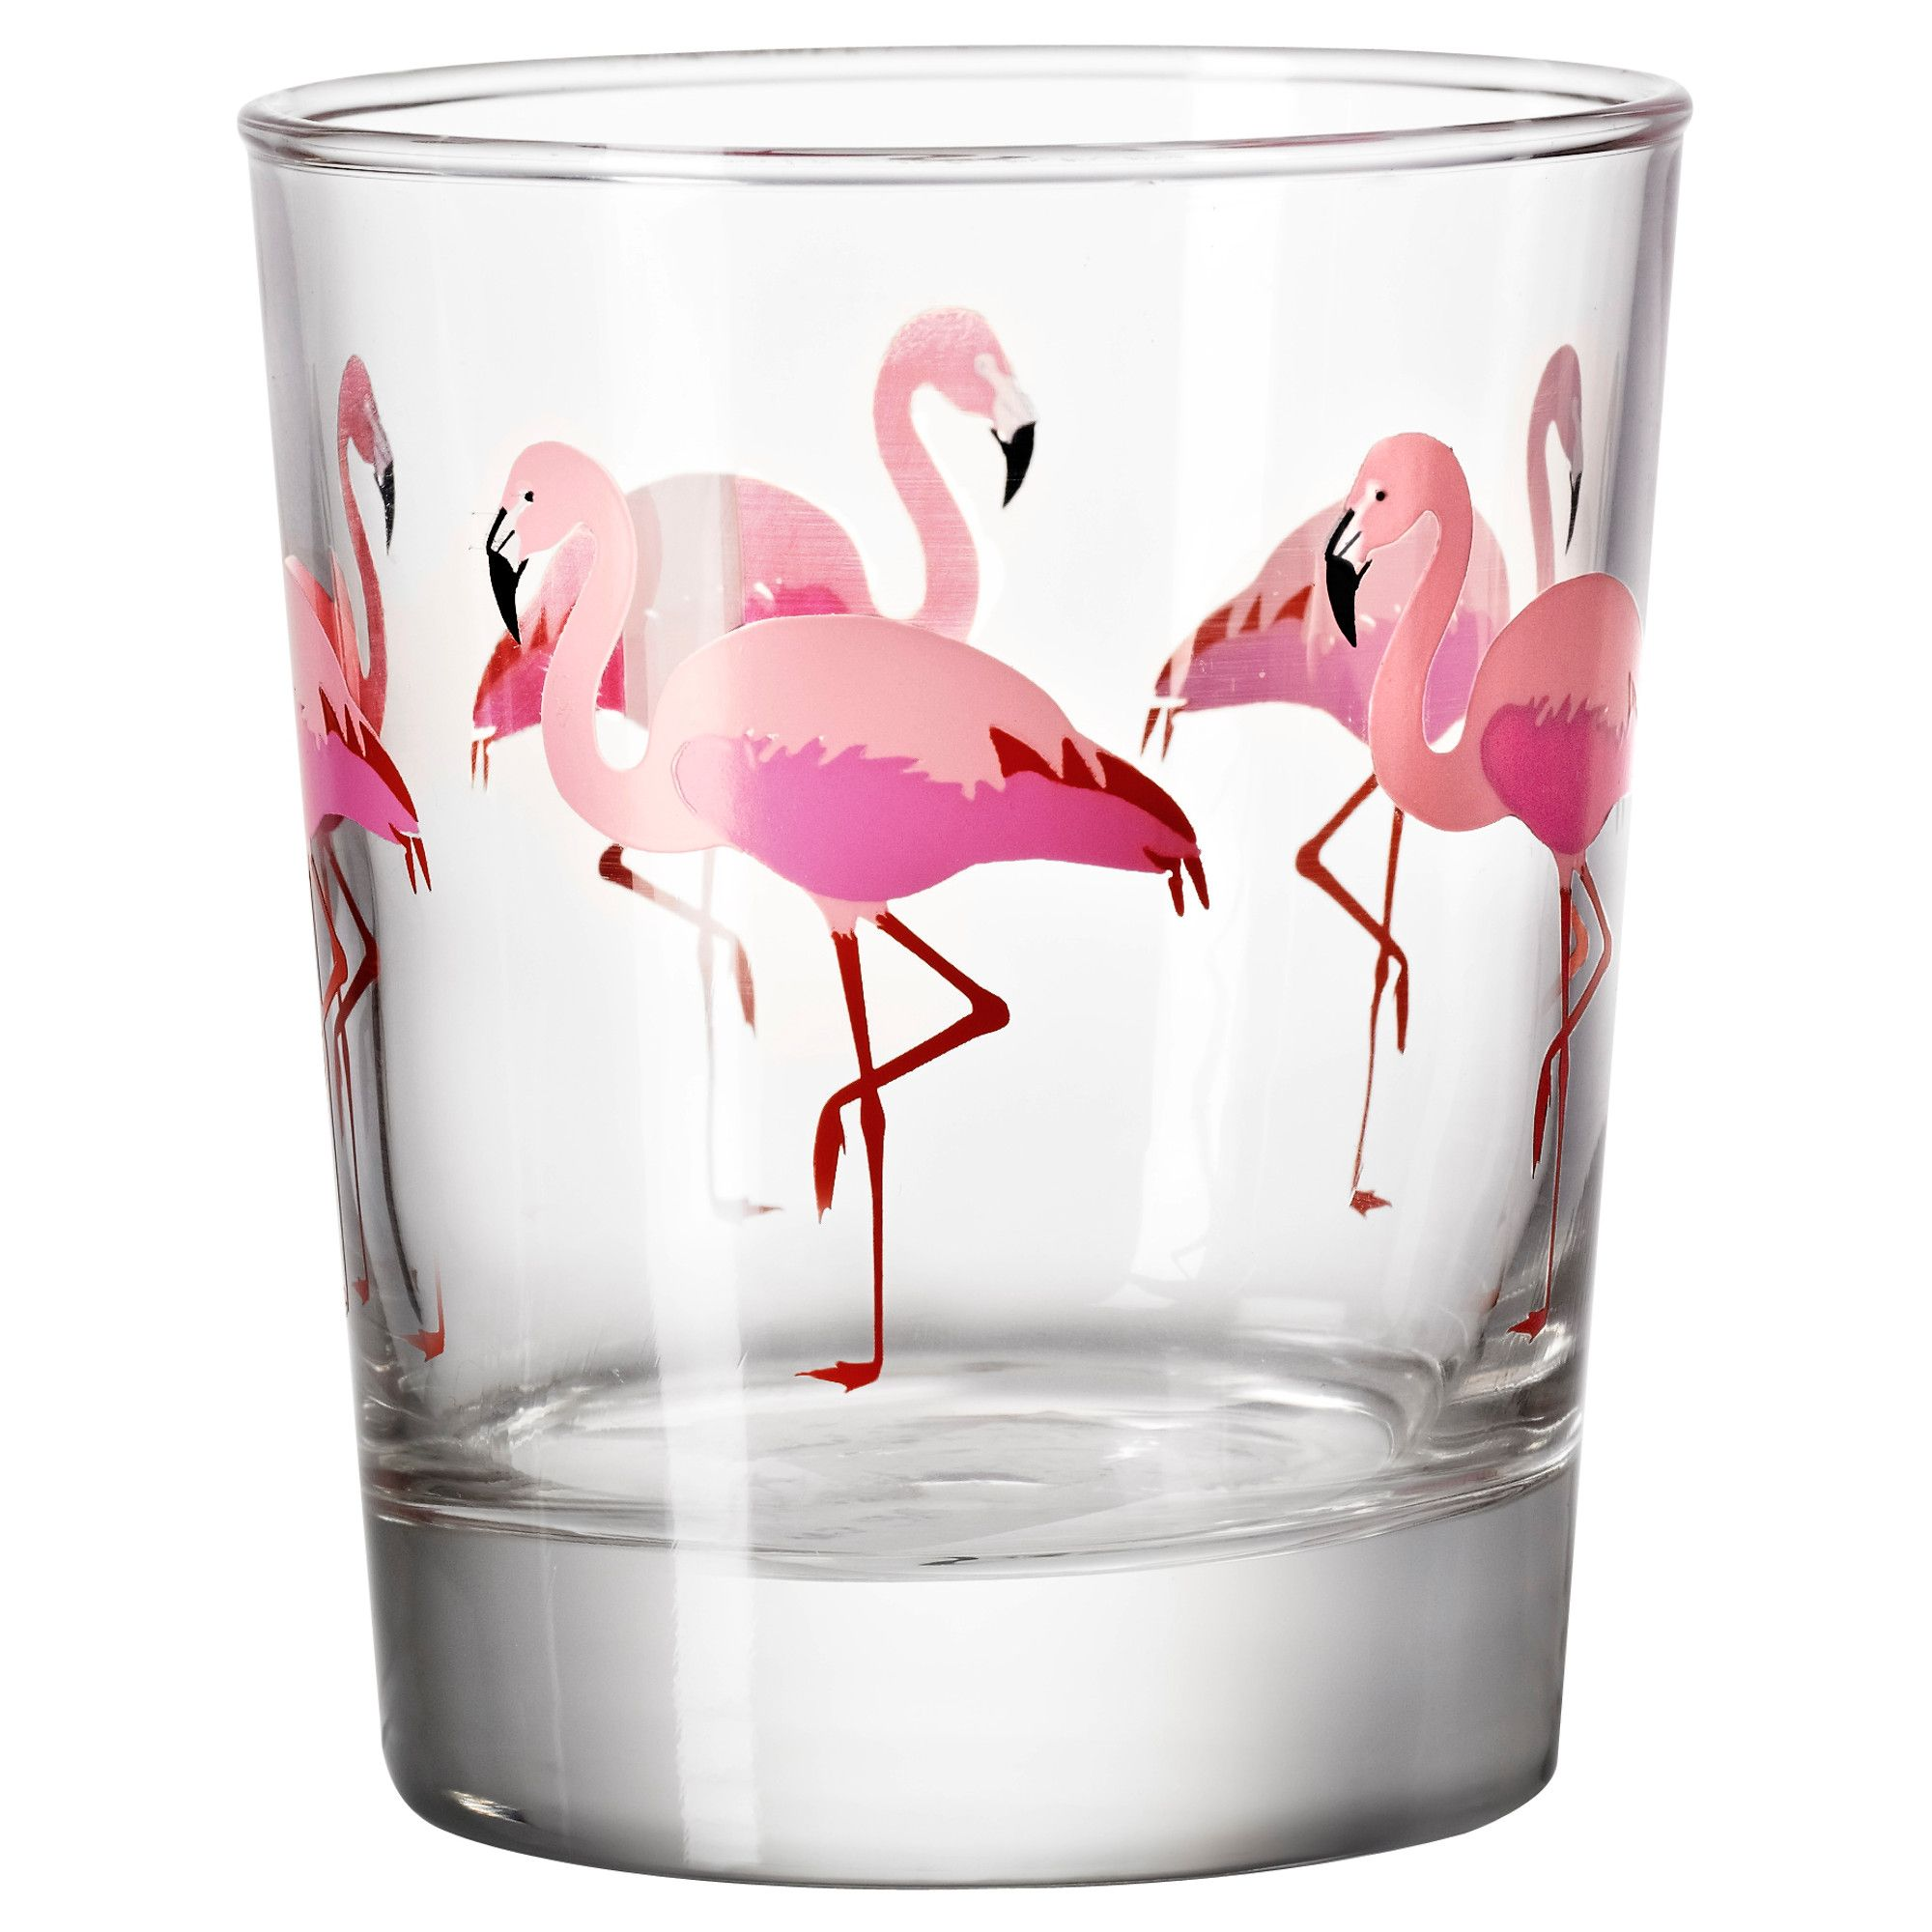 sommarfint glas ikea products i love pinterest glas flamingos und gl ser ikea. Black Bedroom Furniture Sets. Home Design Ideas